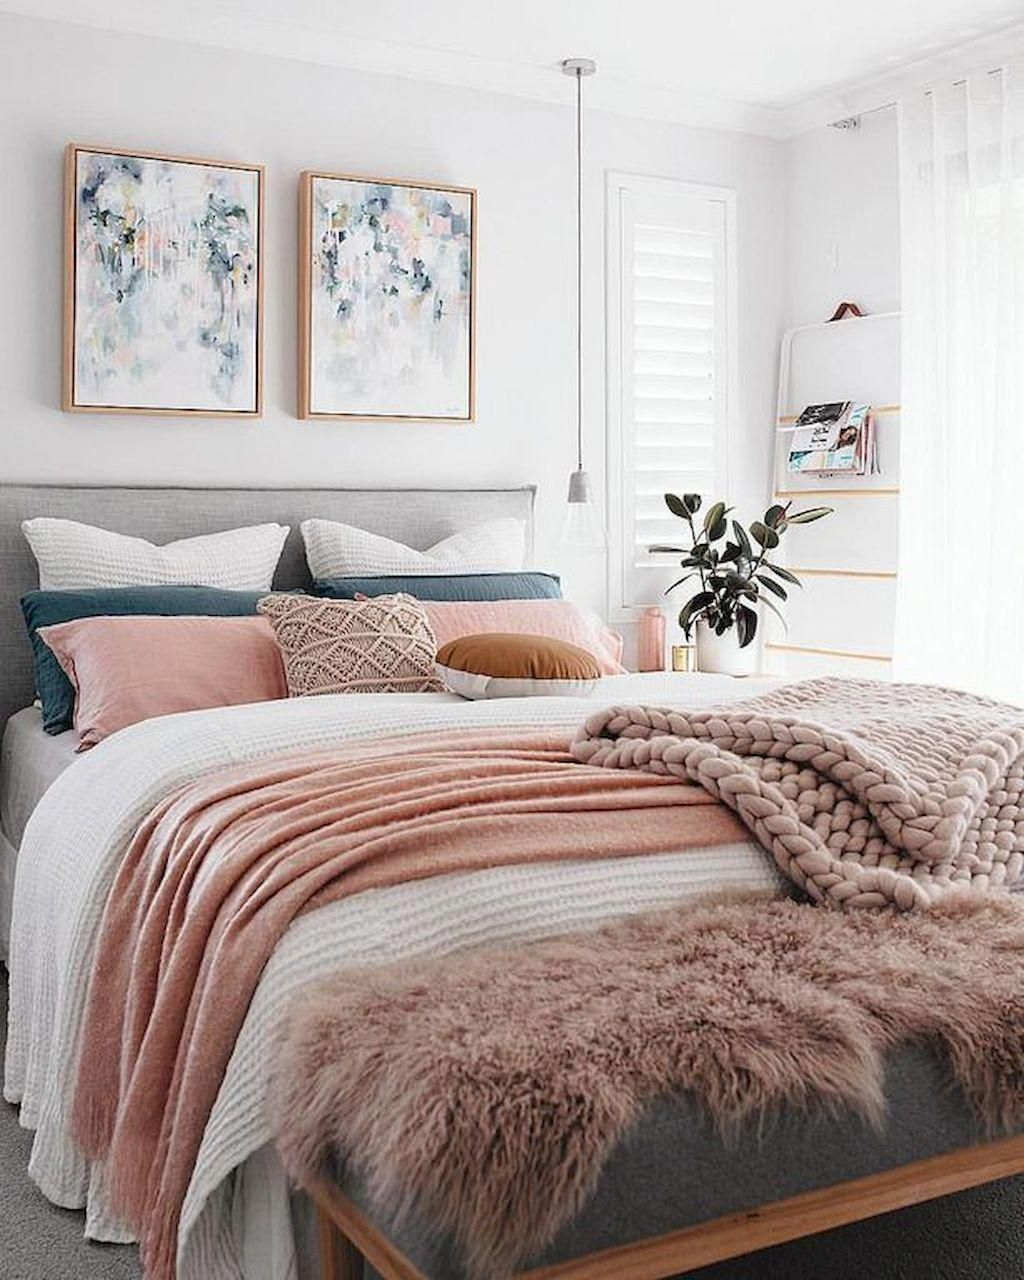 Tiny Master Bedroom Decorating Ideas Pic 012: Find Inspiration For Your Area With